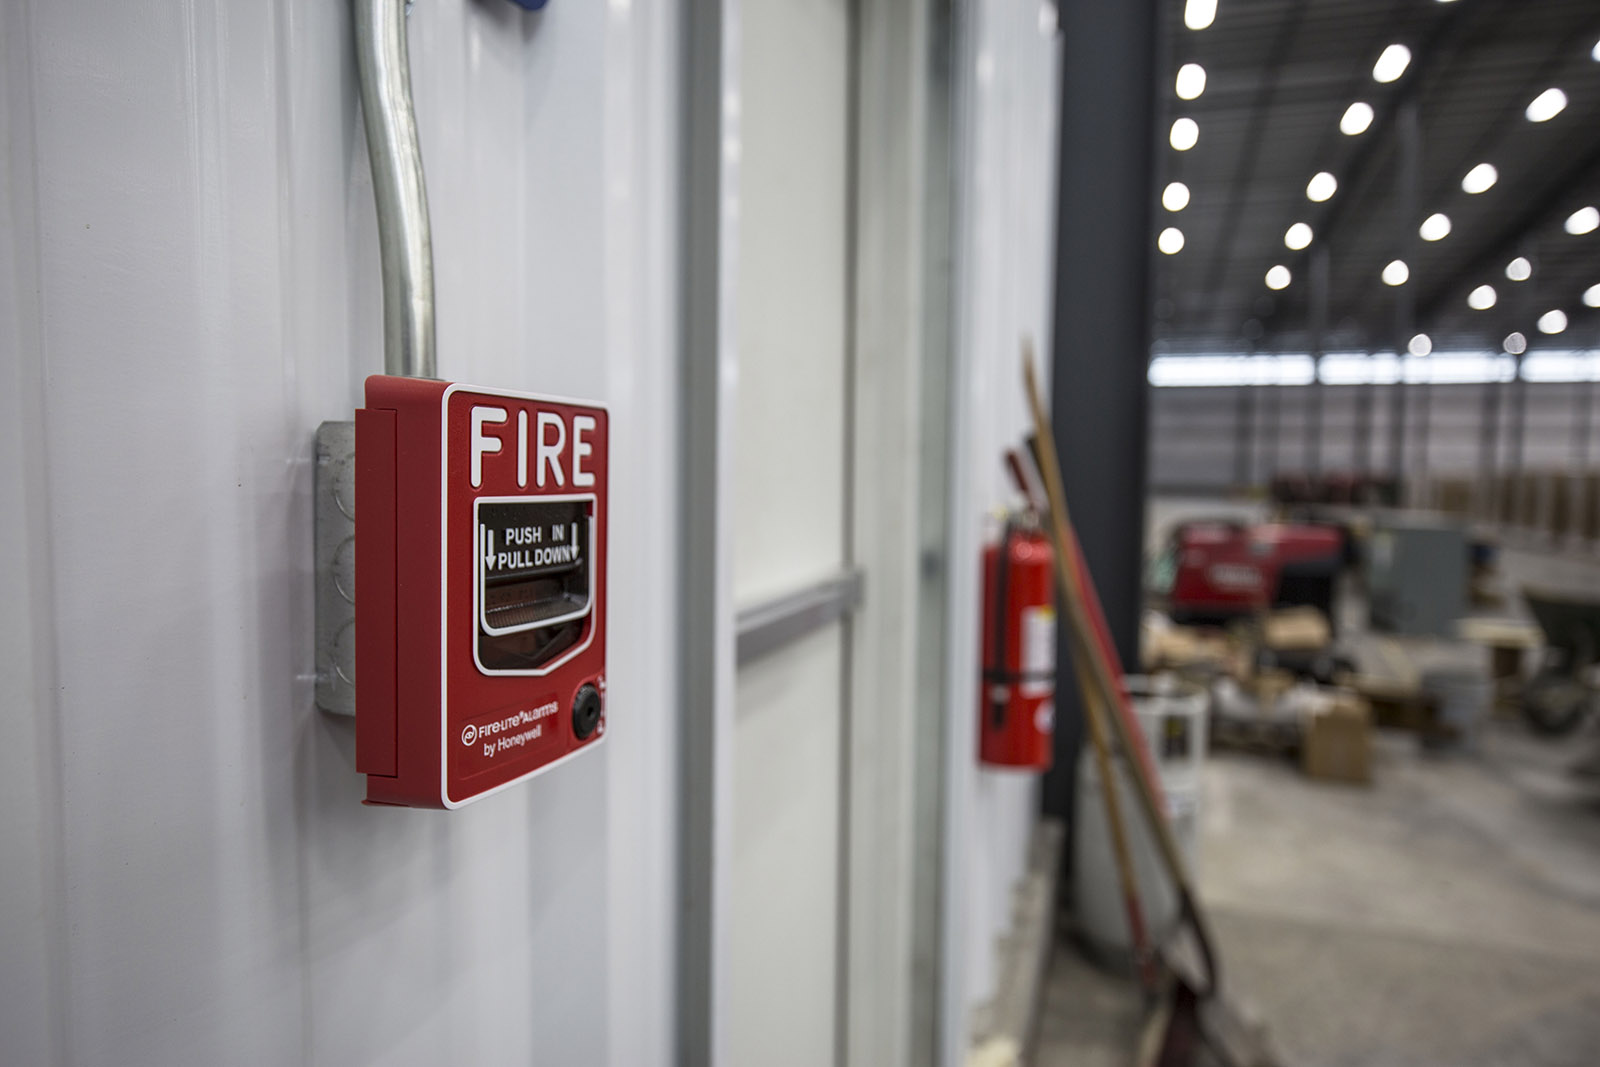 Fire Alarms Image